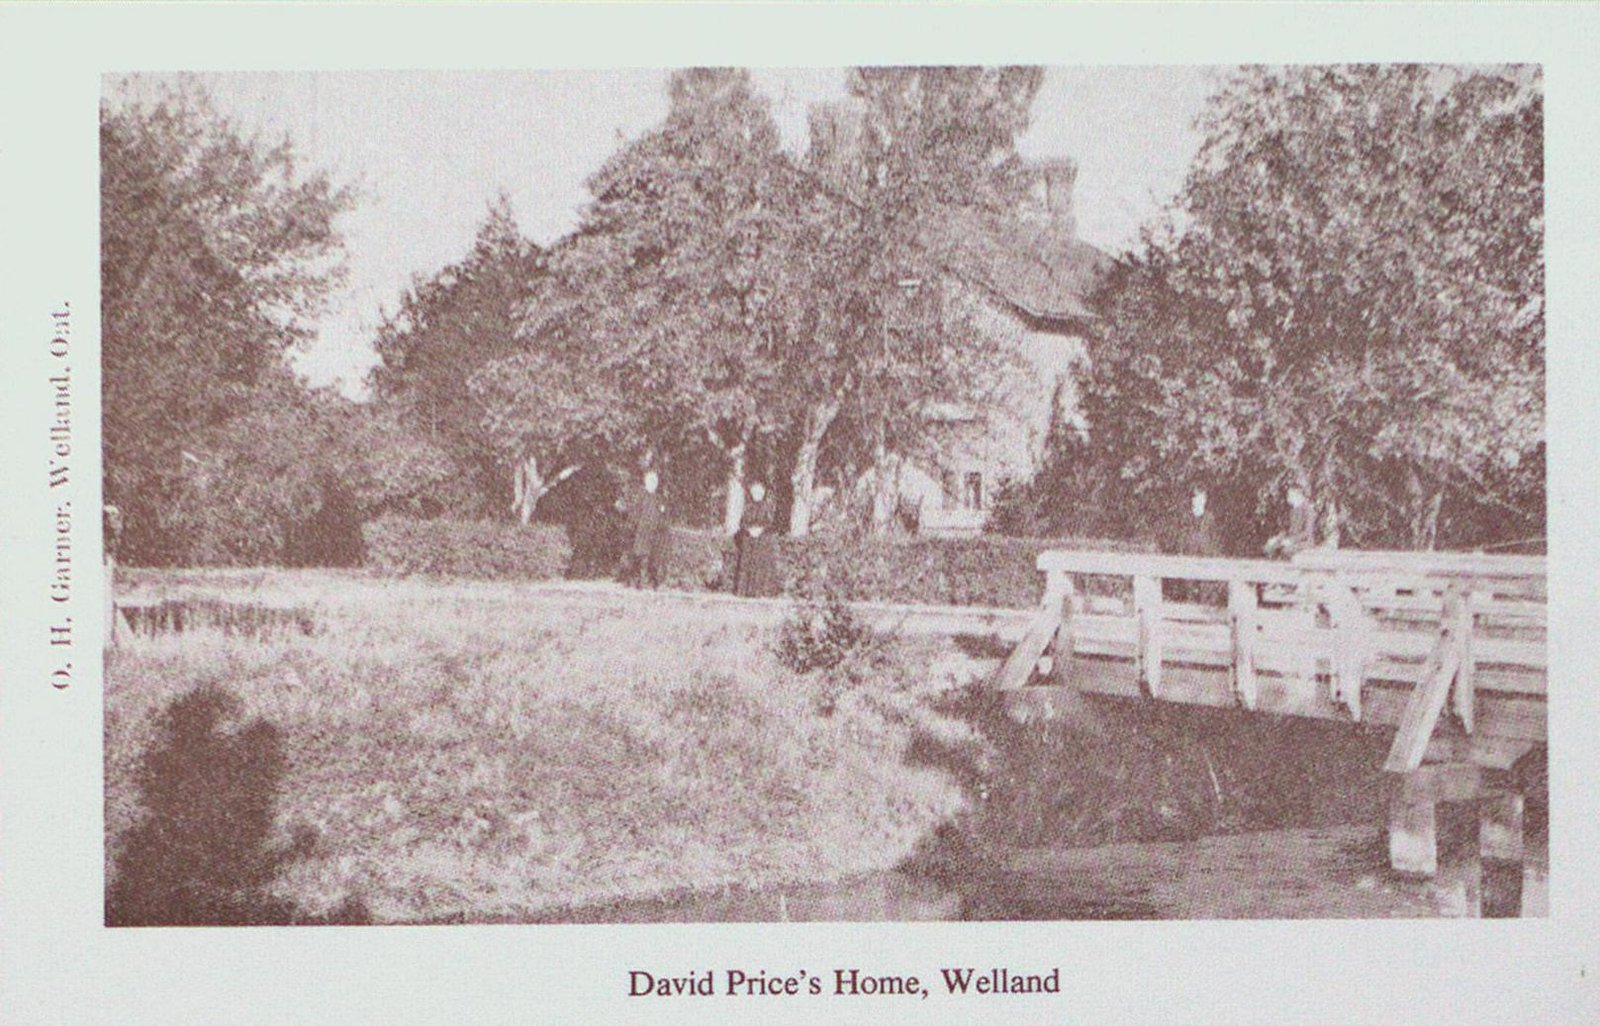 David Price's Home, Welland